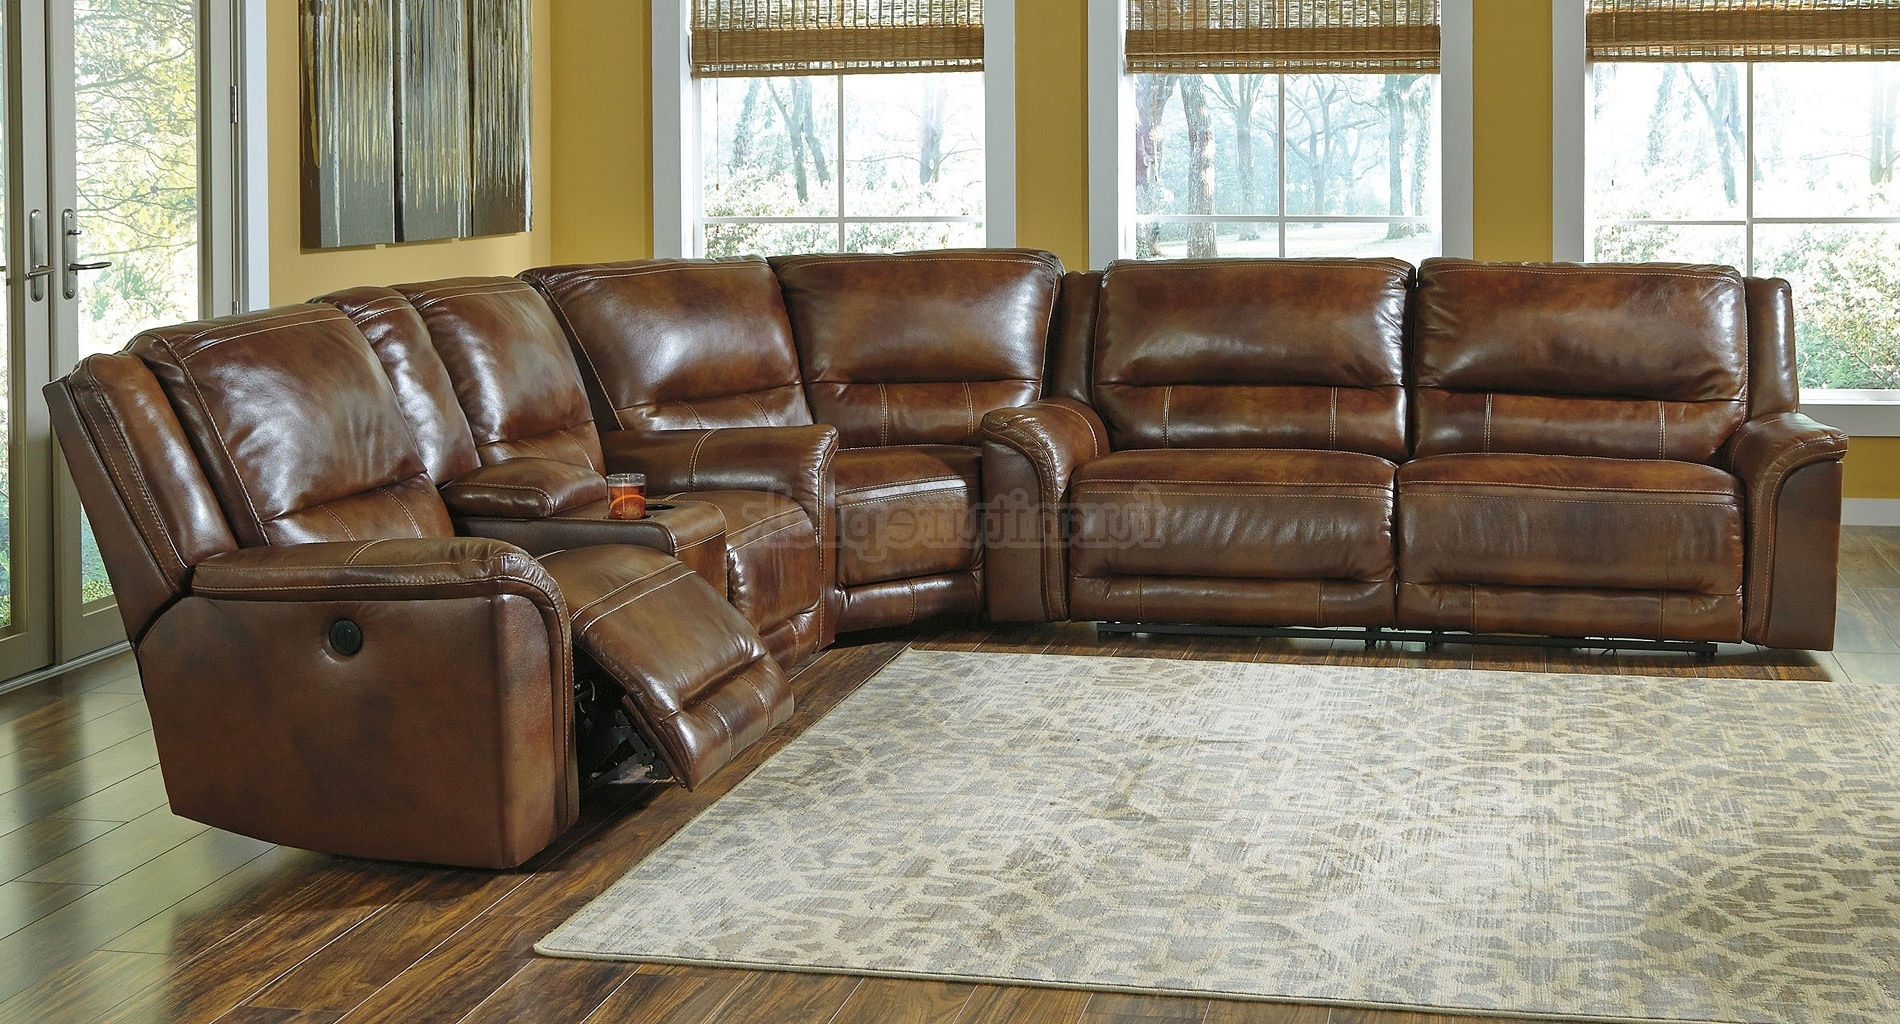 Recent Sectional Sofas With Power Recliners Inside Leather Sectional Sofa With Power Recliner 82 With Leather (View 13 of 20)